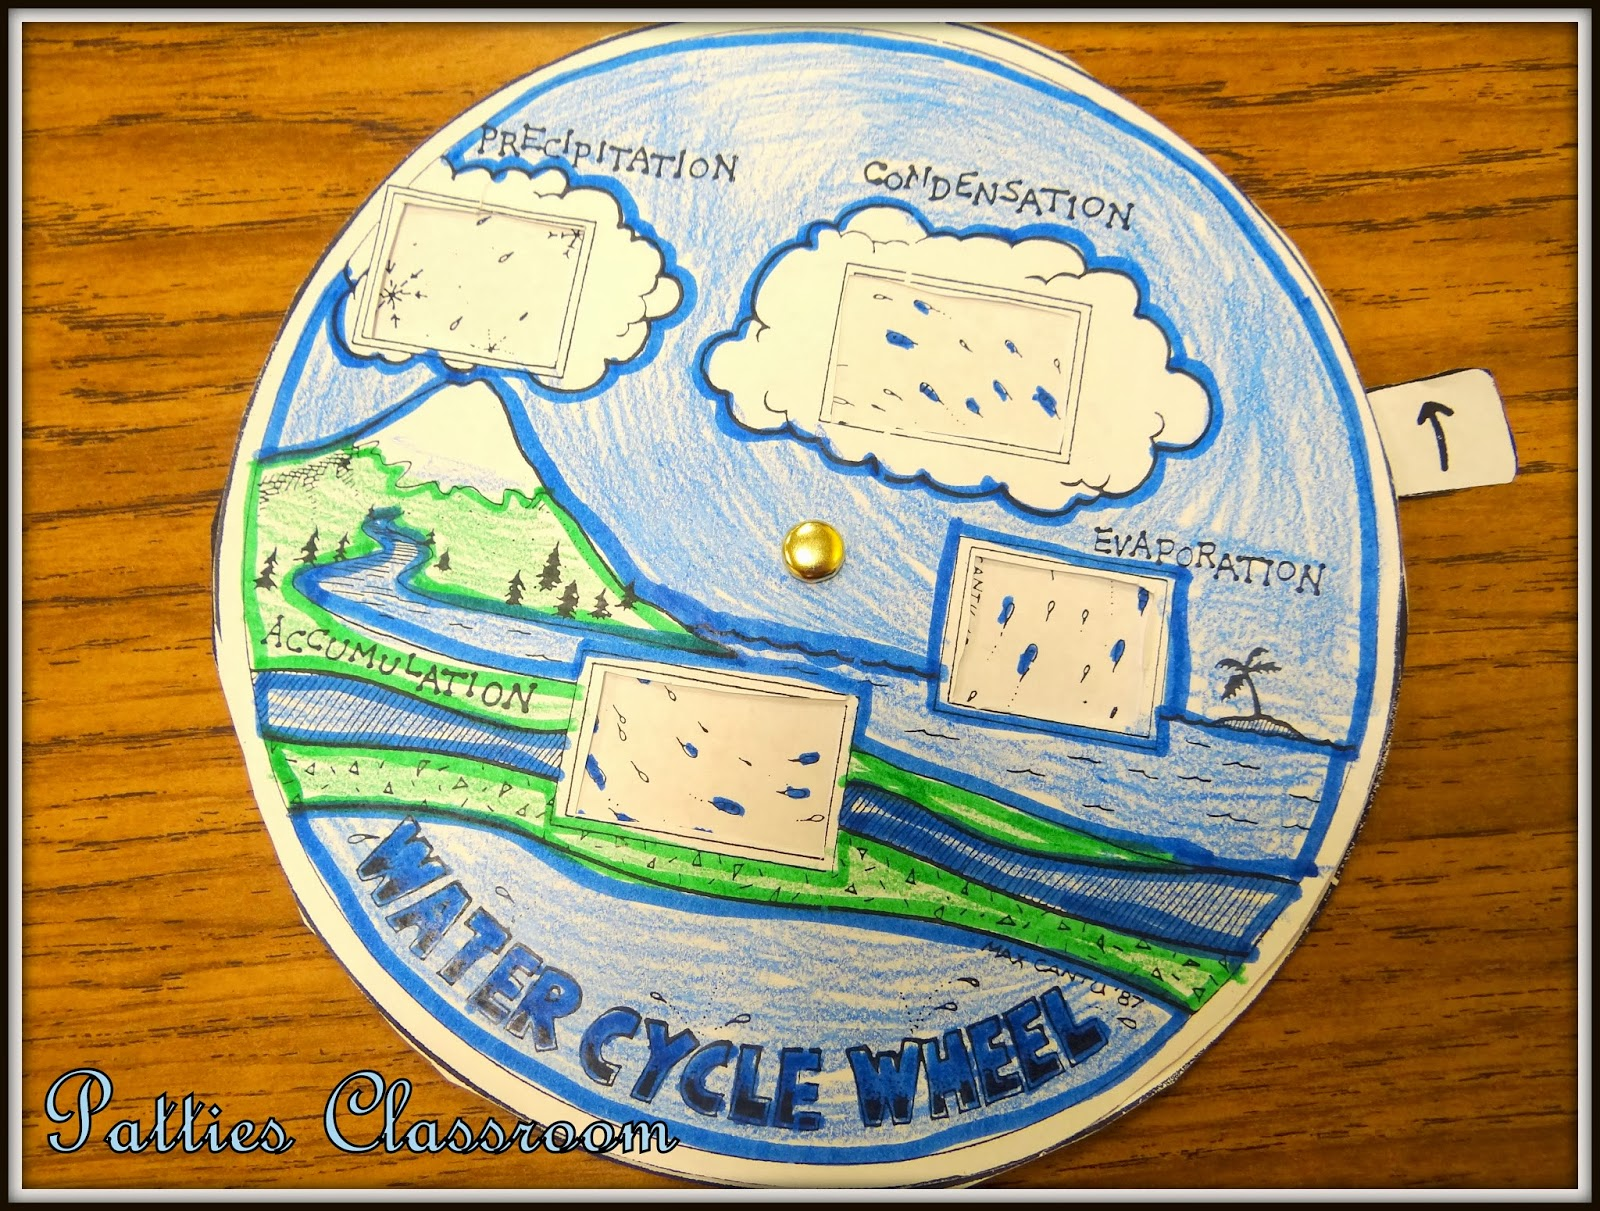 PATTIES CLASSROOM: Weather, Clouds and Water Cycle Activities for Kids